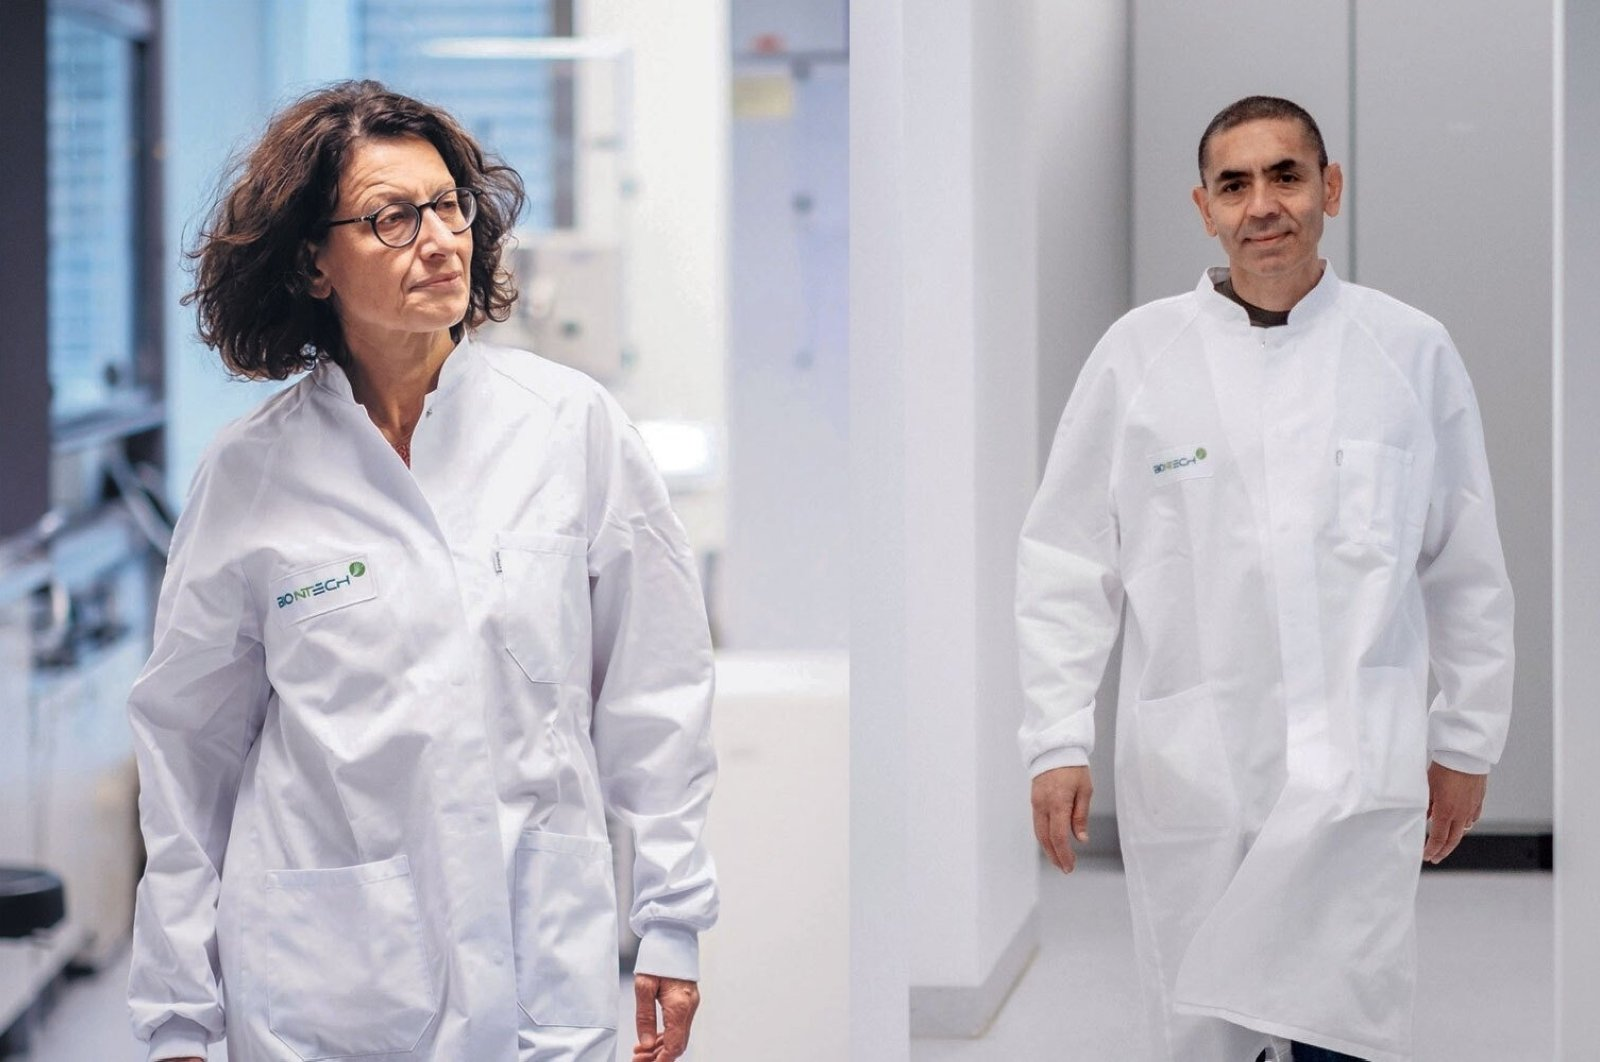 Özlem Türeci (L), chief medical officer of BioNTech, and Uğur Şahin, its CEO and co-founder, walk through one of the company's laboratories in photos provided on Sept. 2, 2020 and Nov. 12, 2020, respectively. (Photos by DPA and DHA)